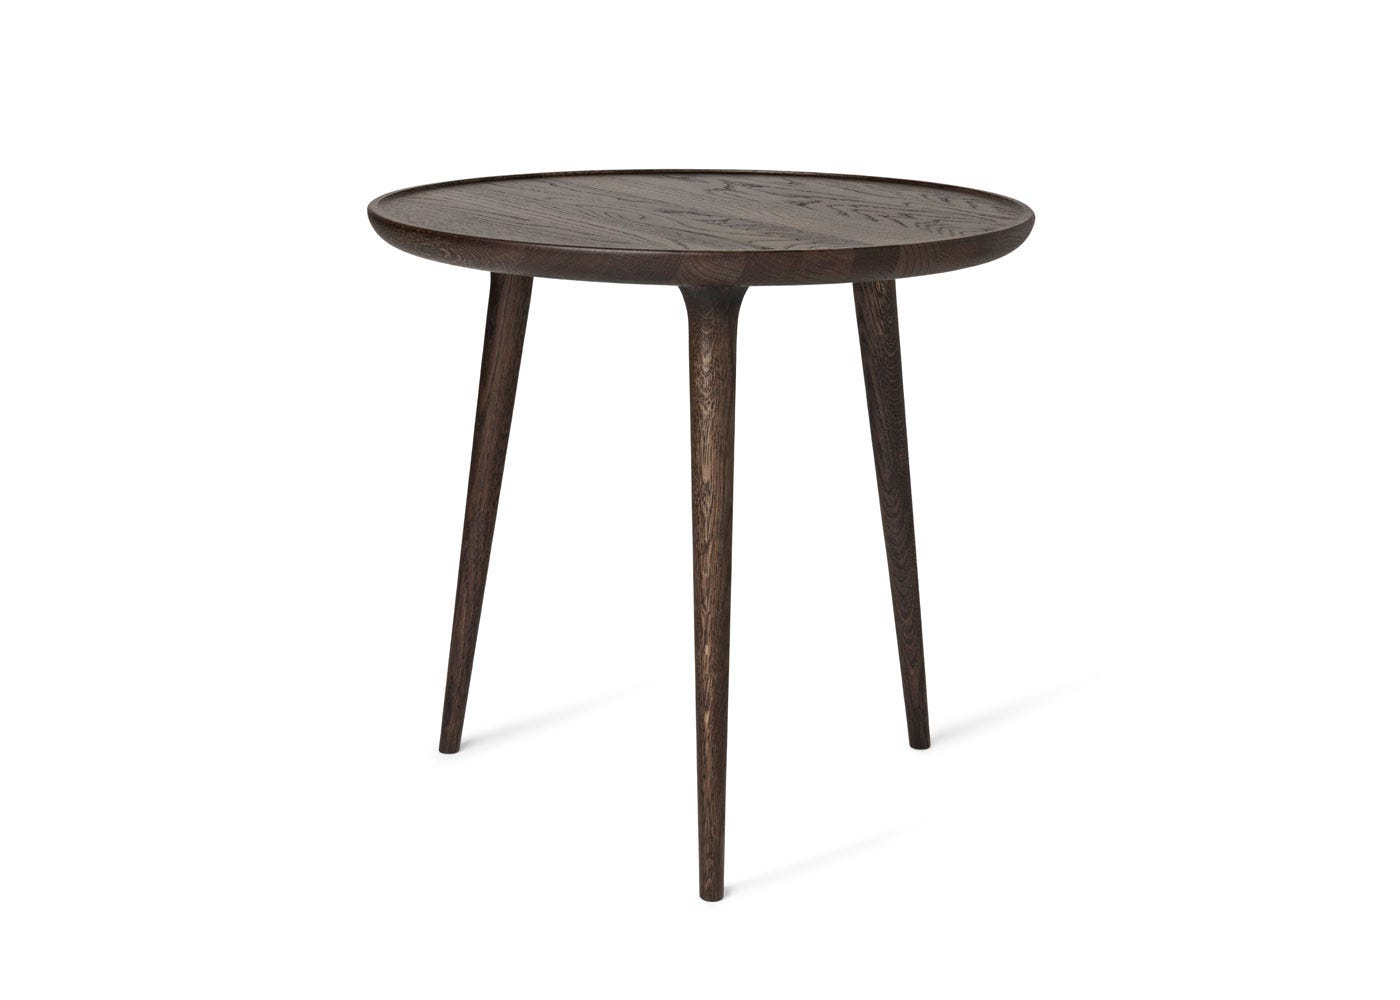 As Shown: Accent Side Table Sirka Grey Stained Oak in Large